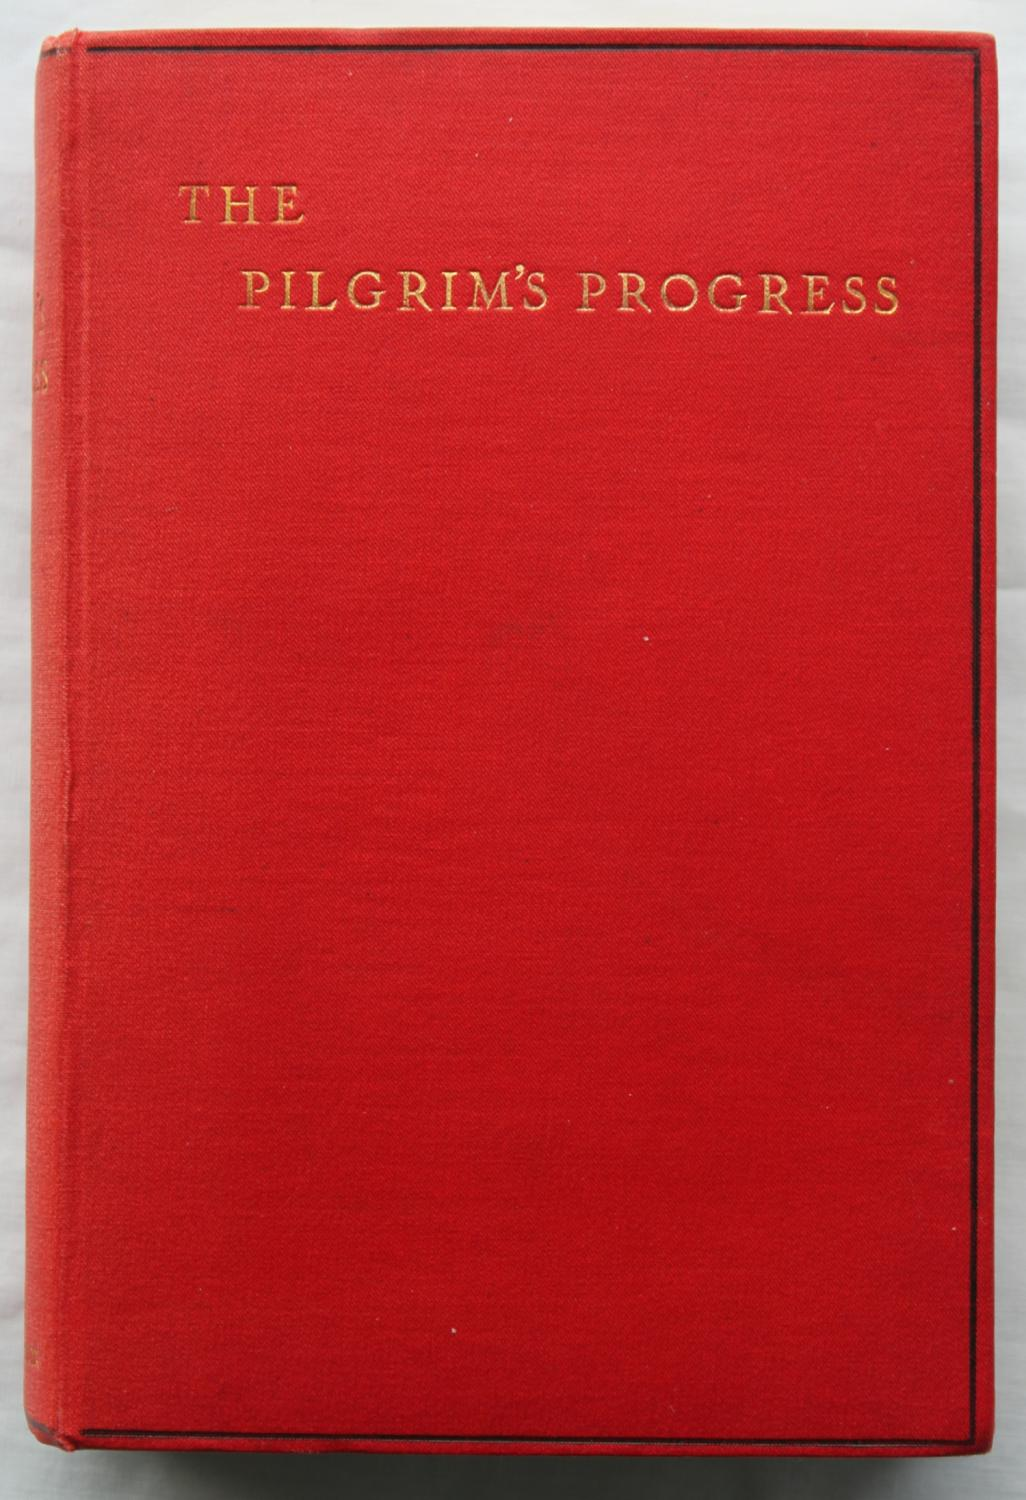 The Pilgrim's Progress : from this World to that which is to Come John Bunyan Very Good Hardcover